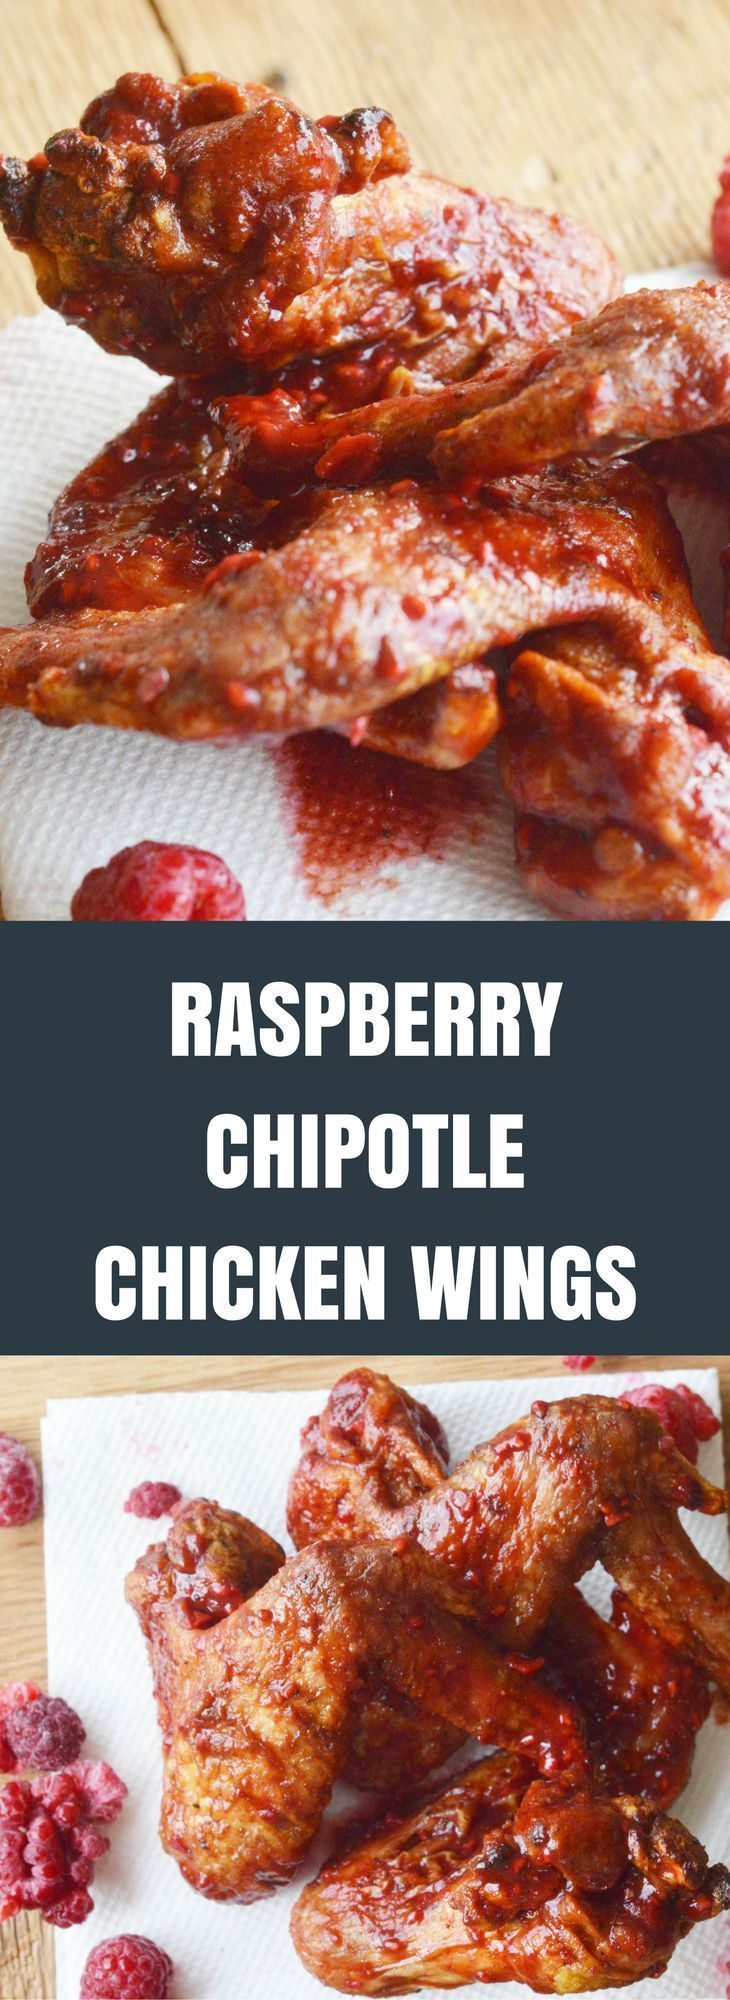 Raspberry Chipotle Chicken Wings Recipe | Sticky Sweet Goodness